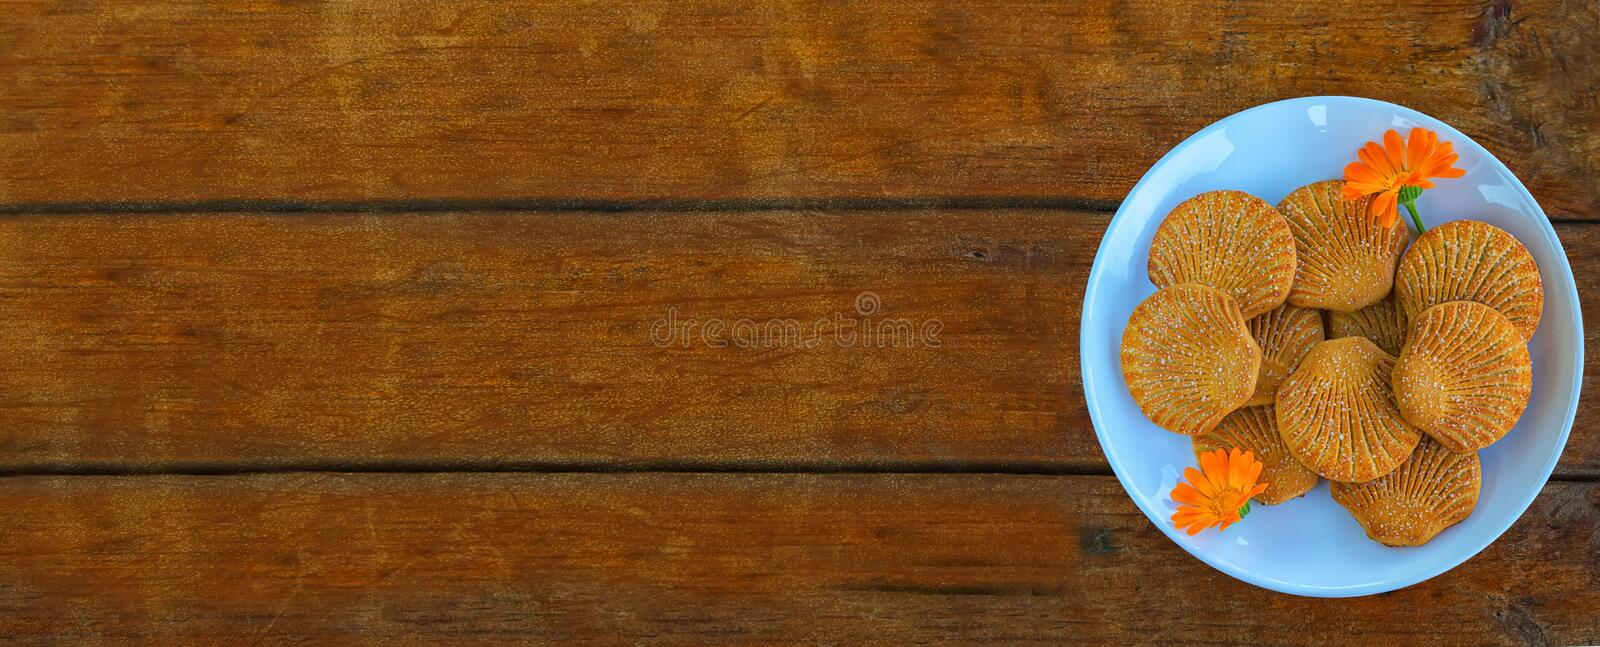 Shells sugar cookies in a blue plate with calendula flowers on wooden background, long format. Banner.  stock images